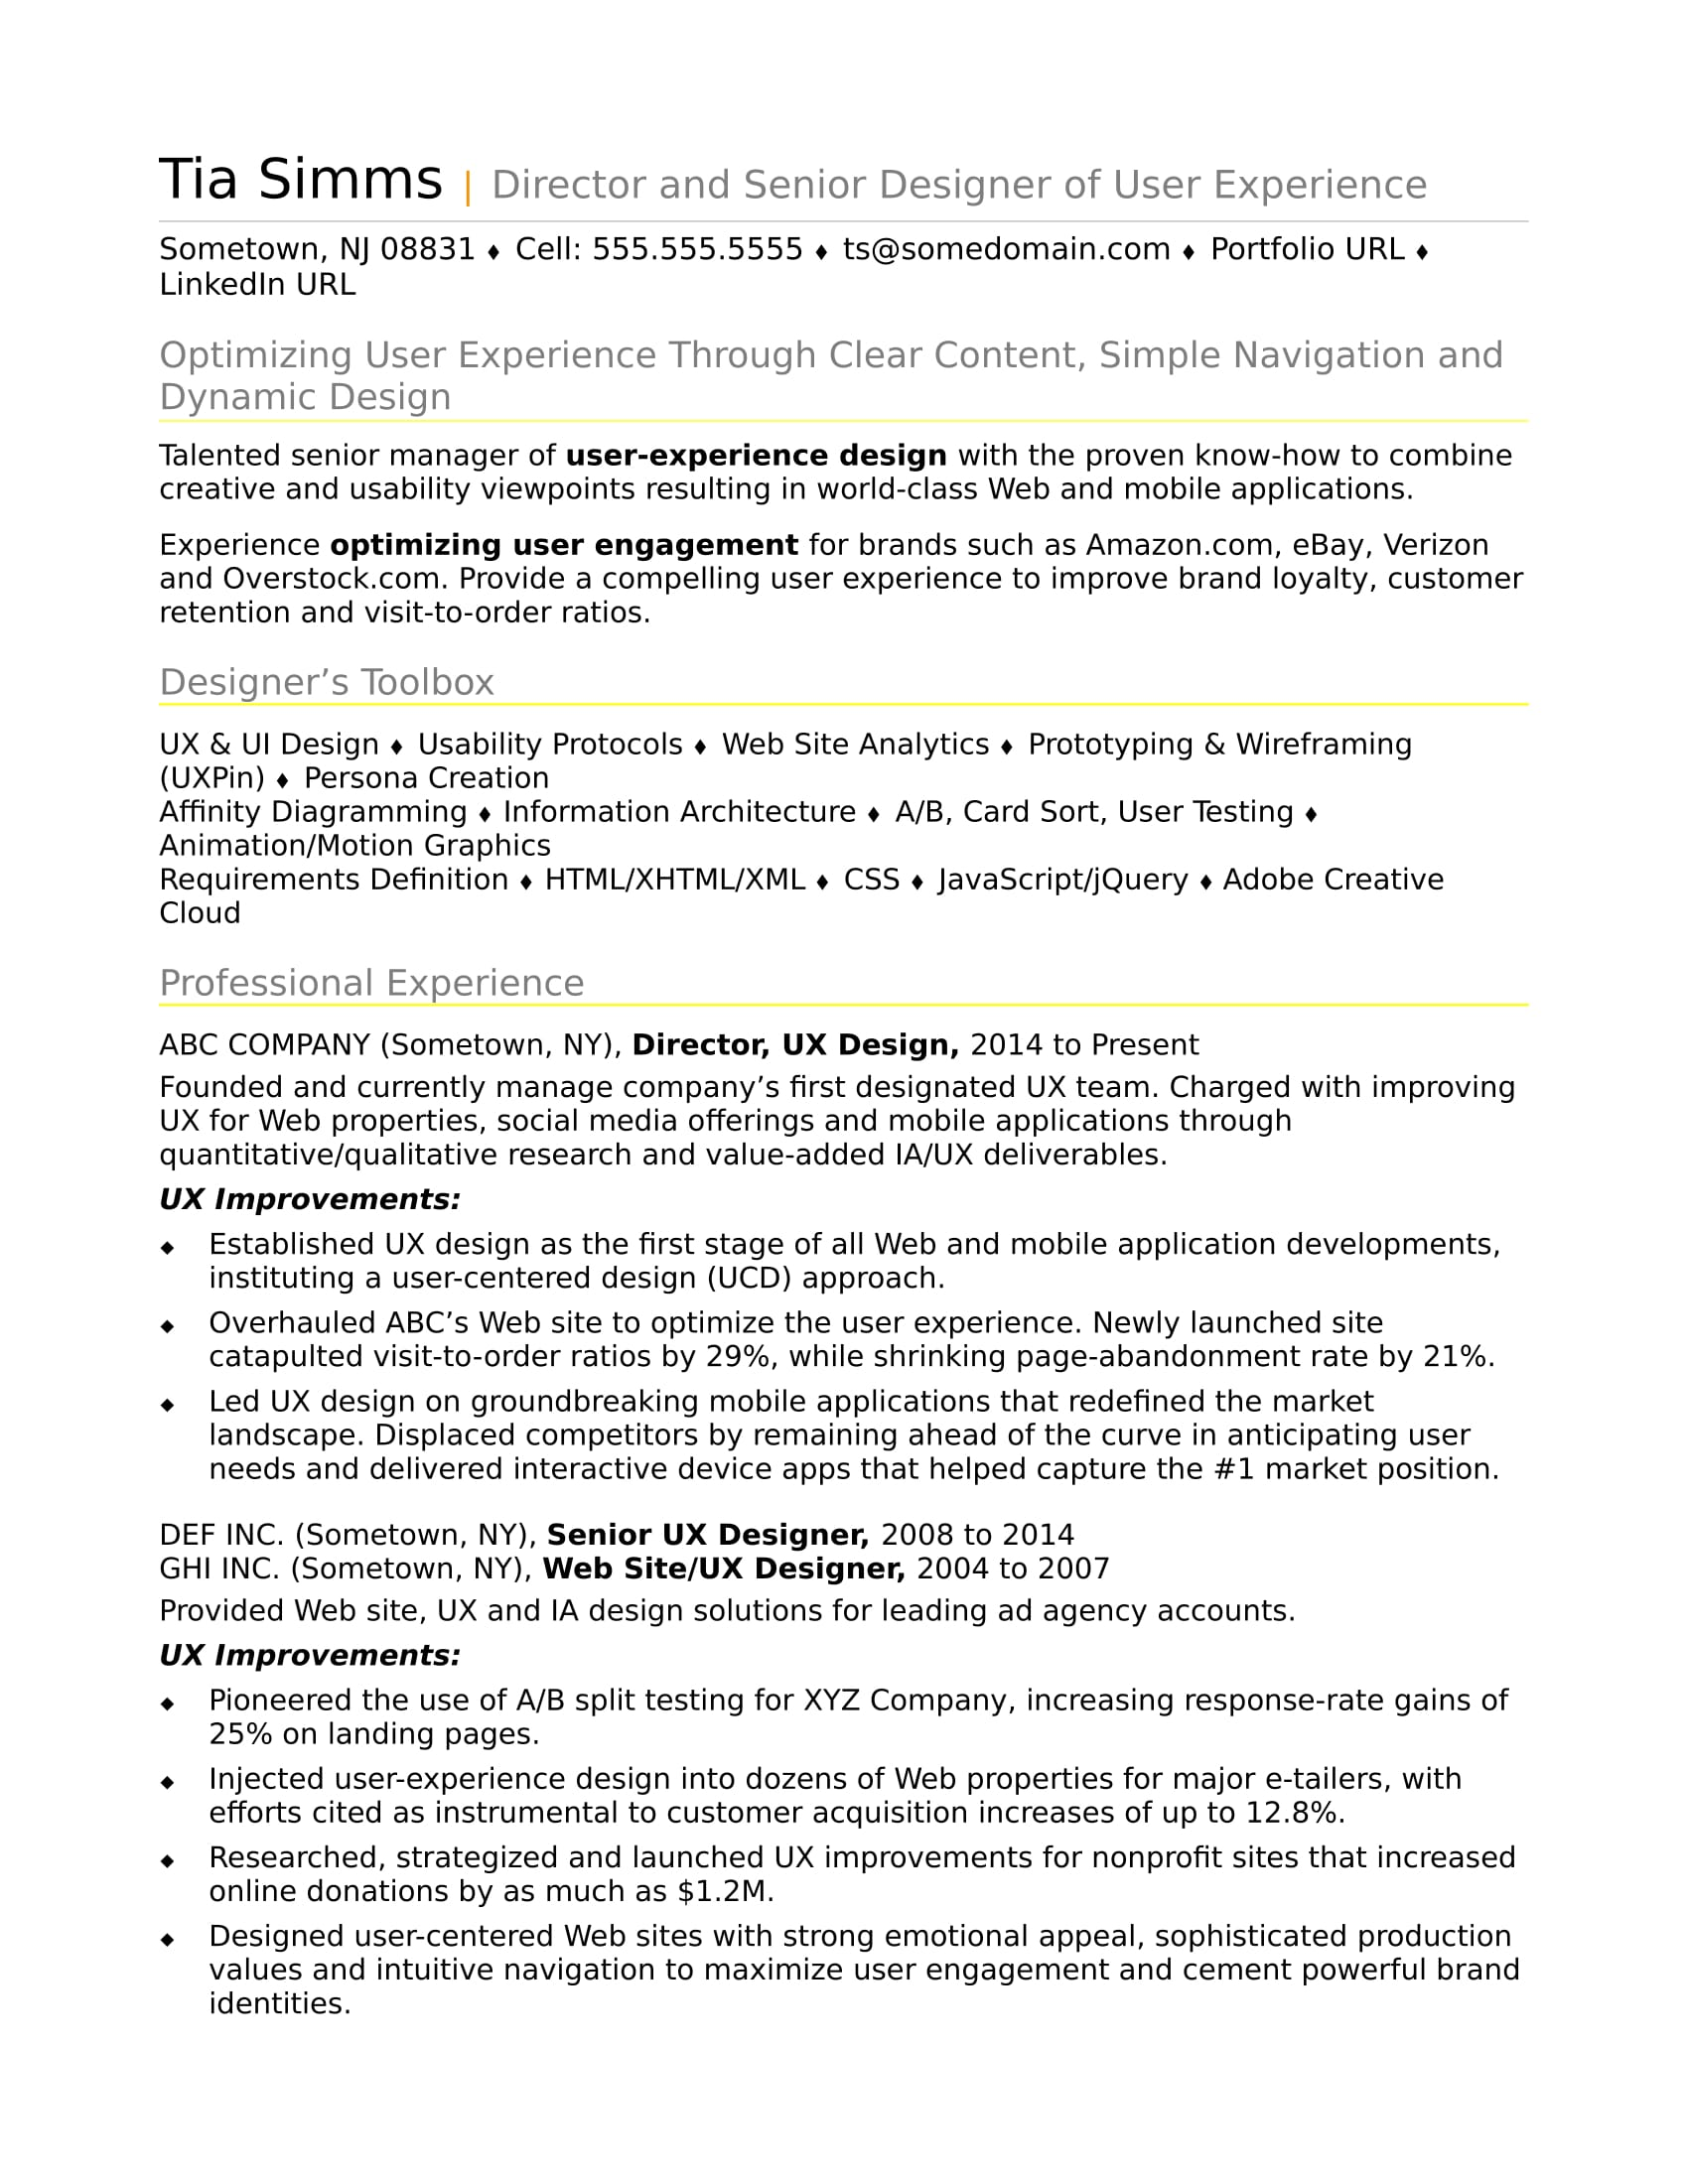 sample resume for an experienced ux designer monster examples abroad apple specialist Resume Experienced Person Resume Examples